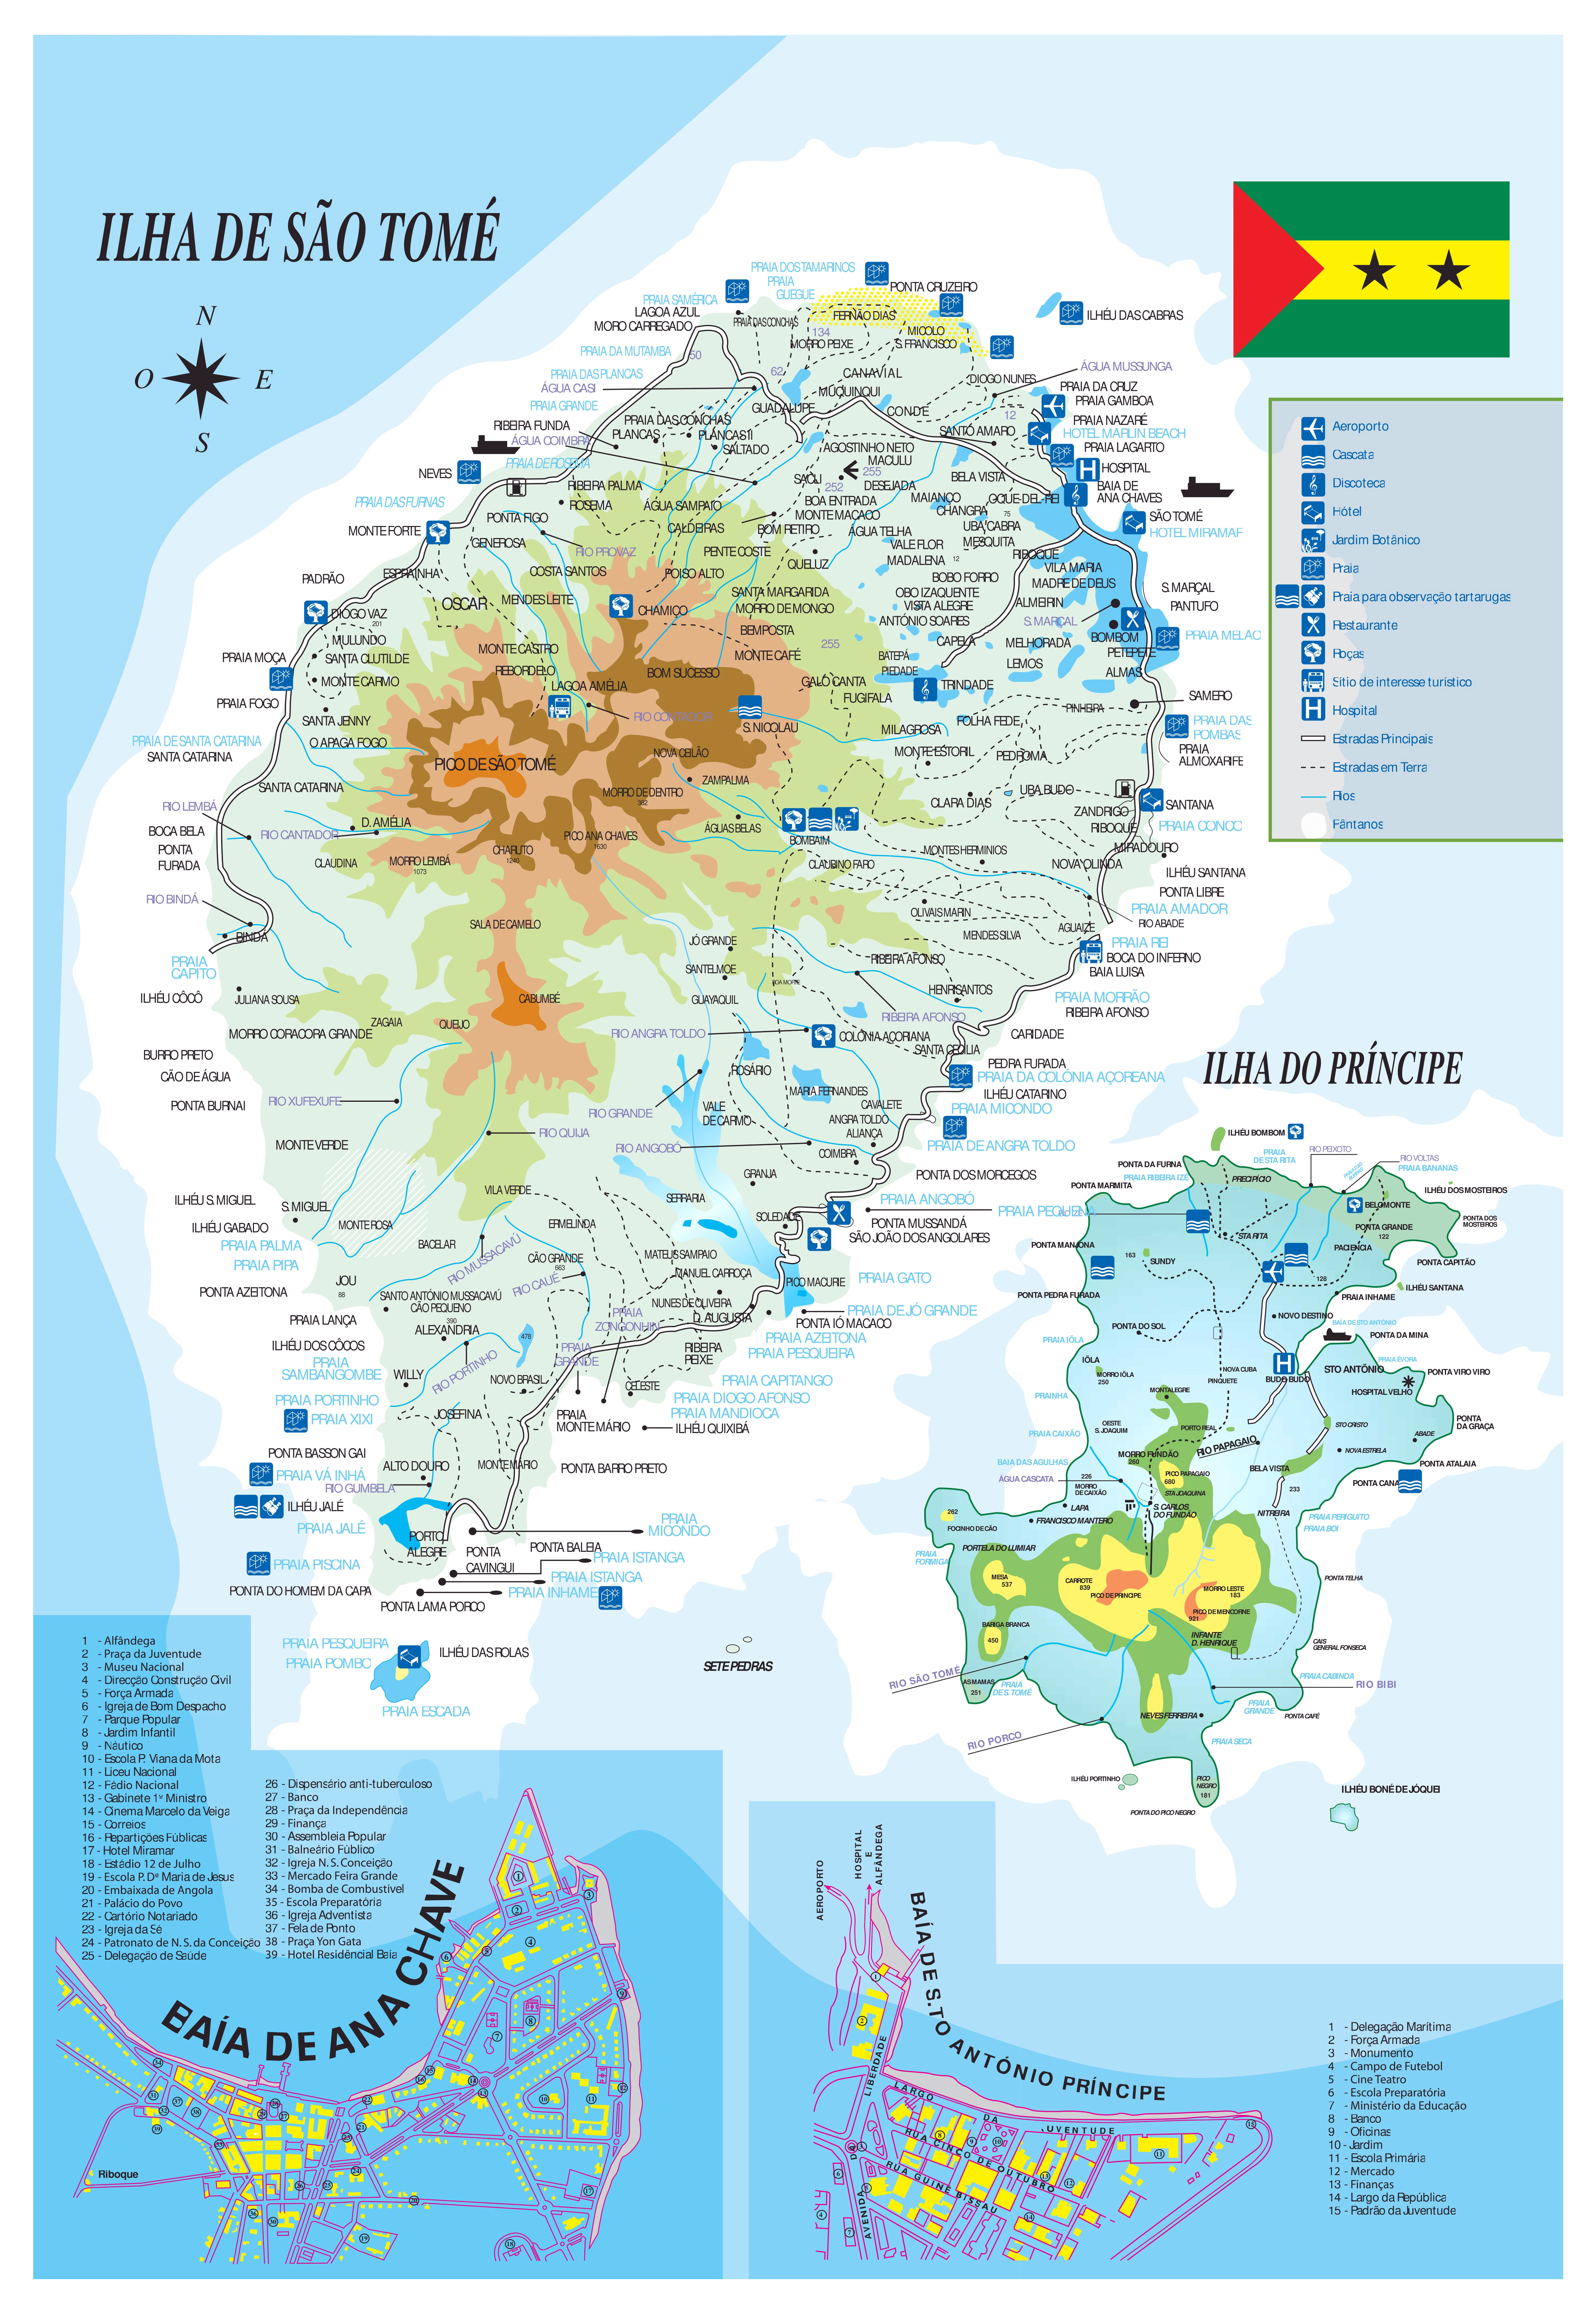 Large scale tourist map of Sao Tome and Principe Sao Tome and